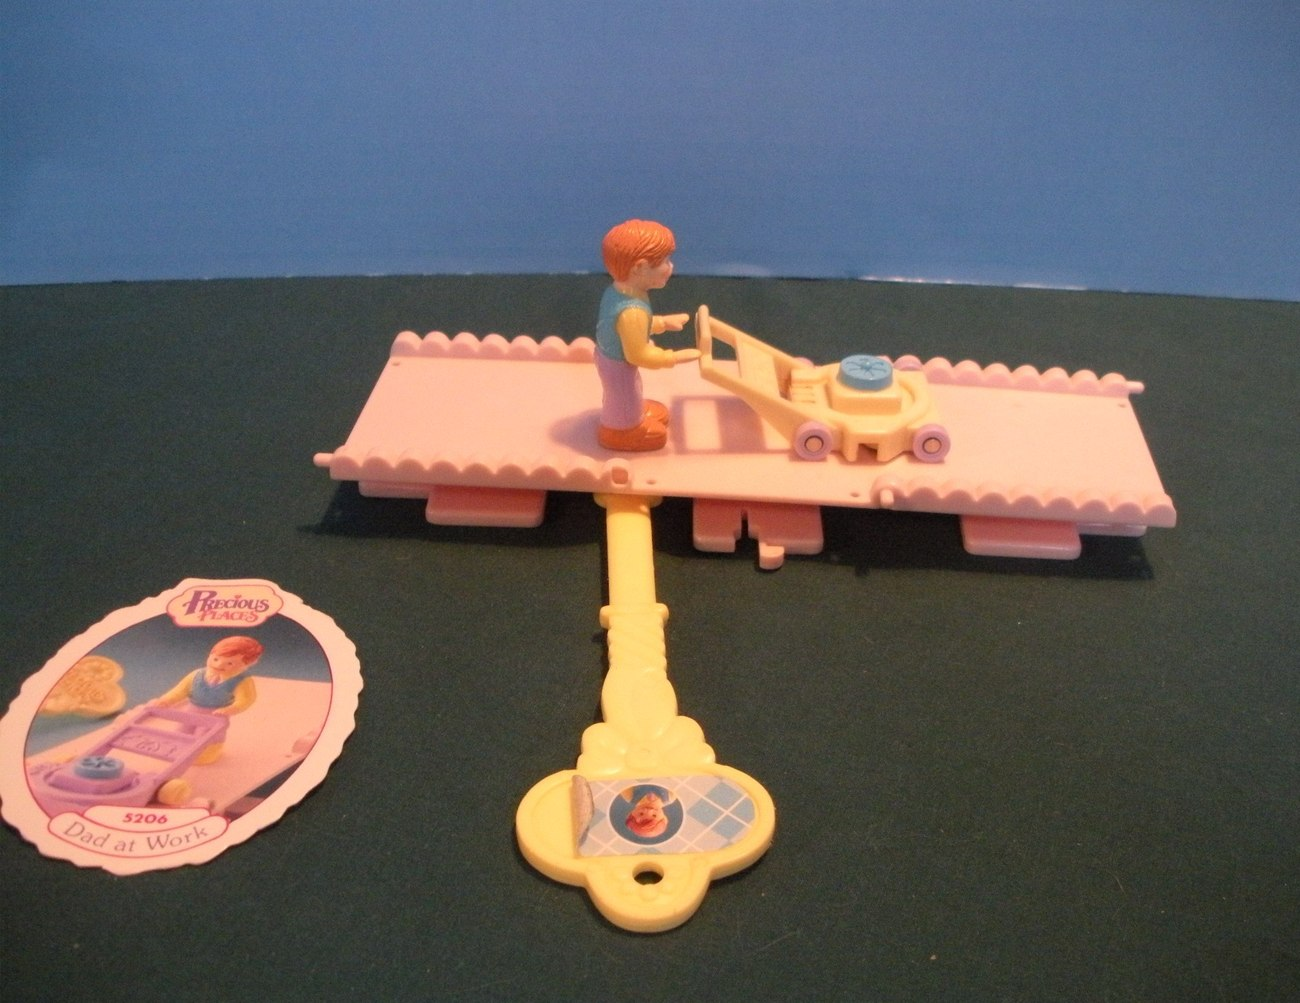 Vintage Fisher Price Precious Places #5206 Dad at Work COMP.with Card /EXC! (A)